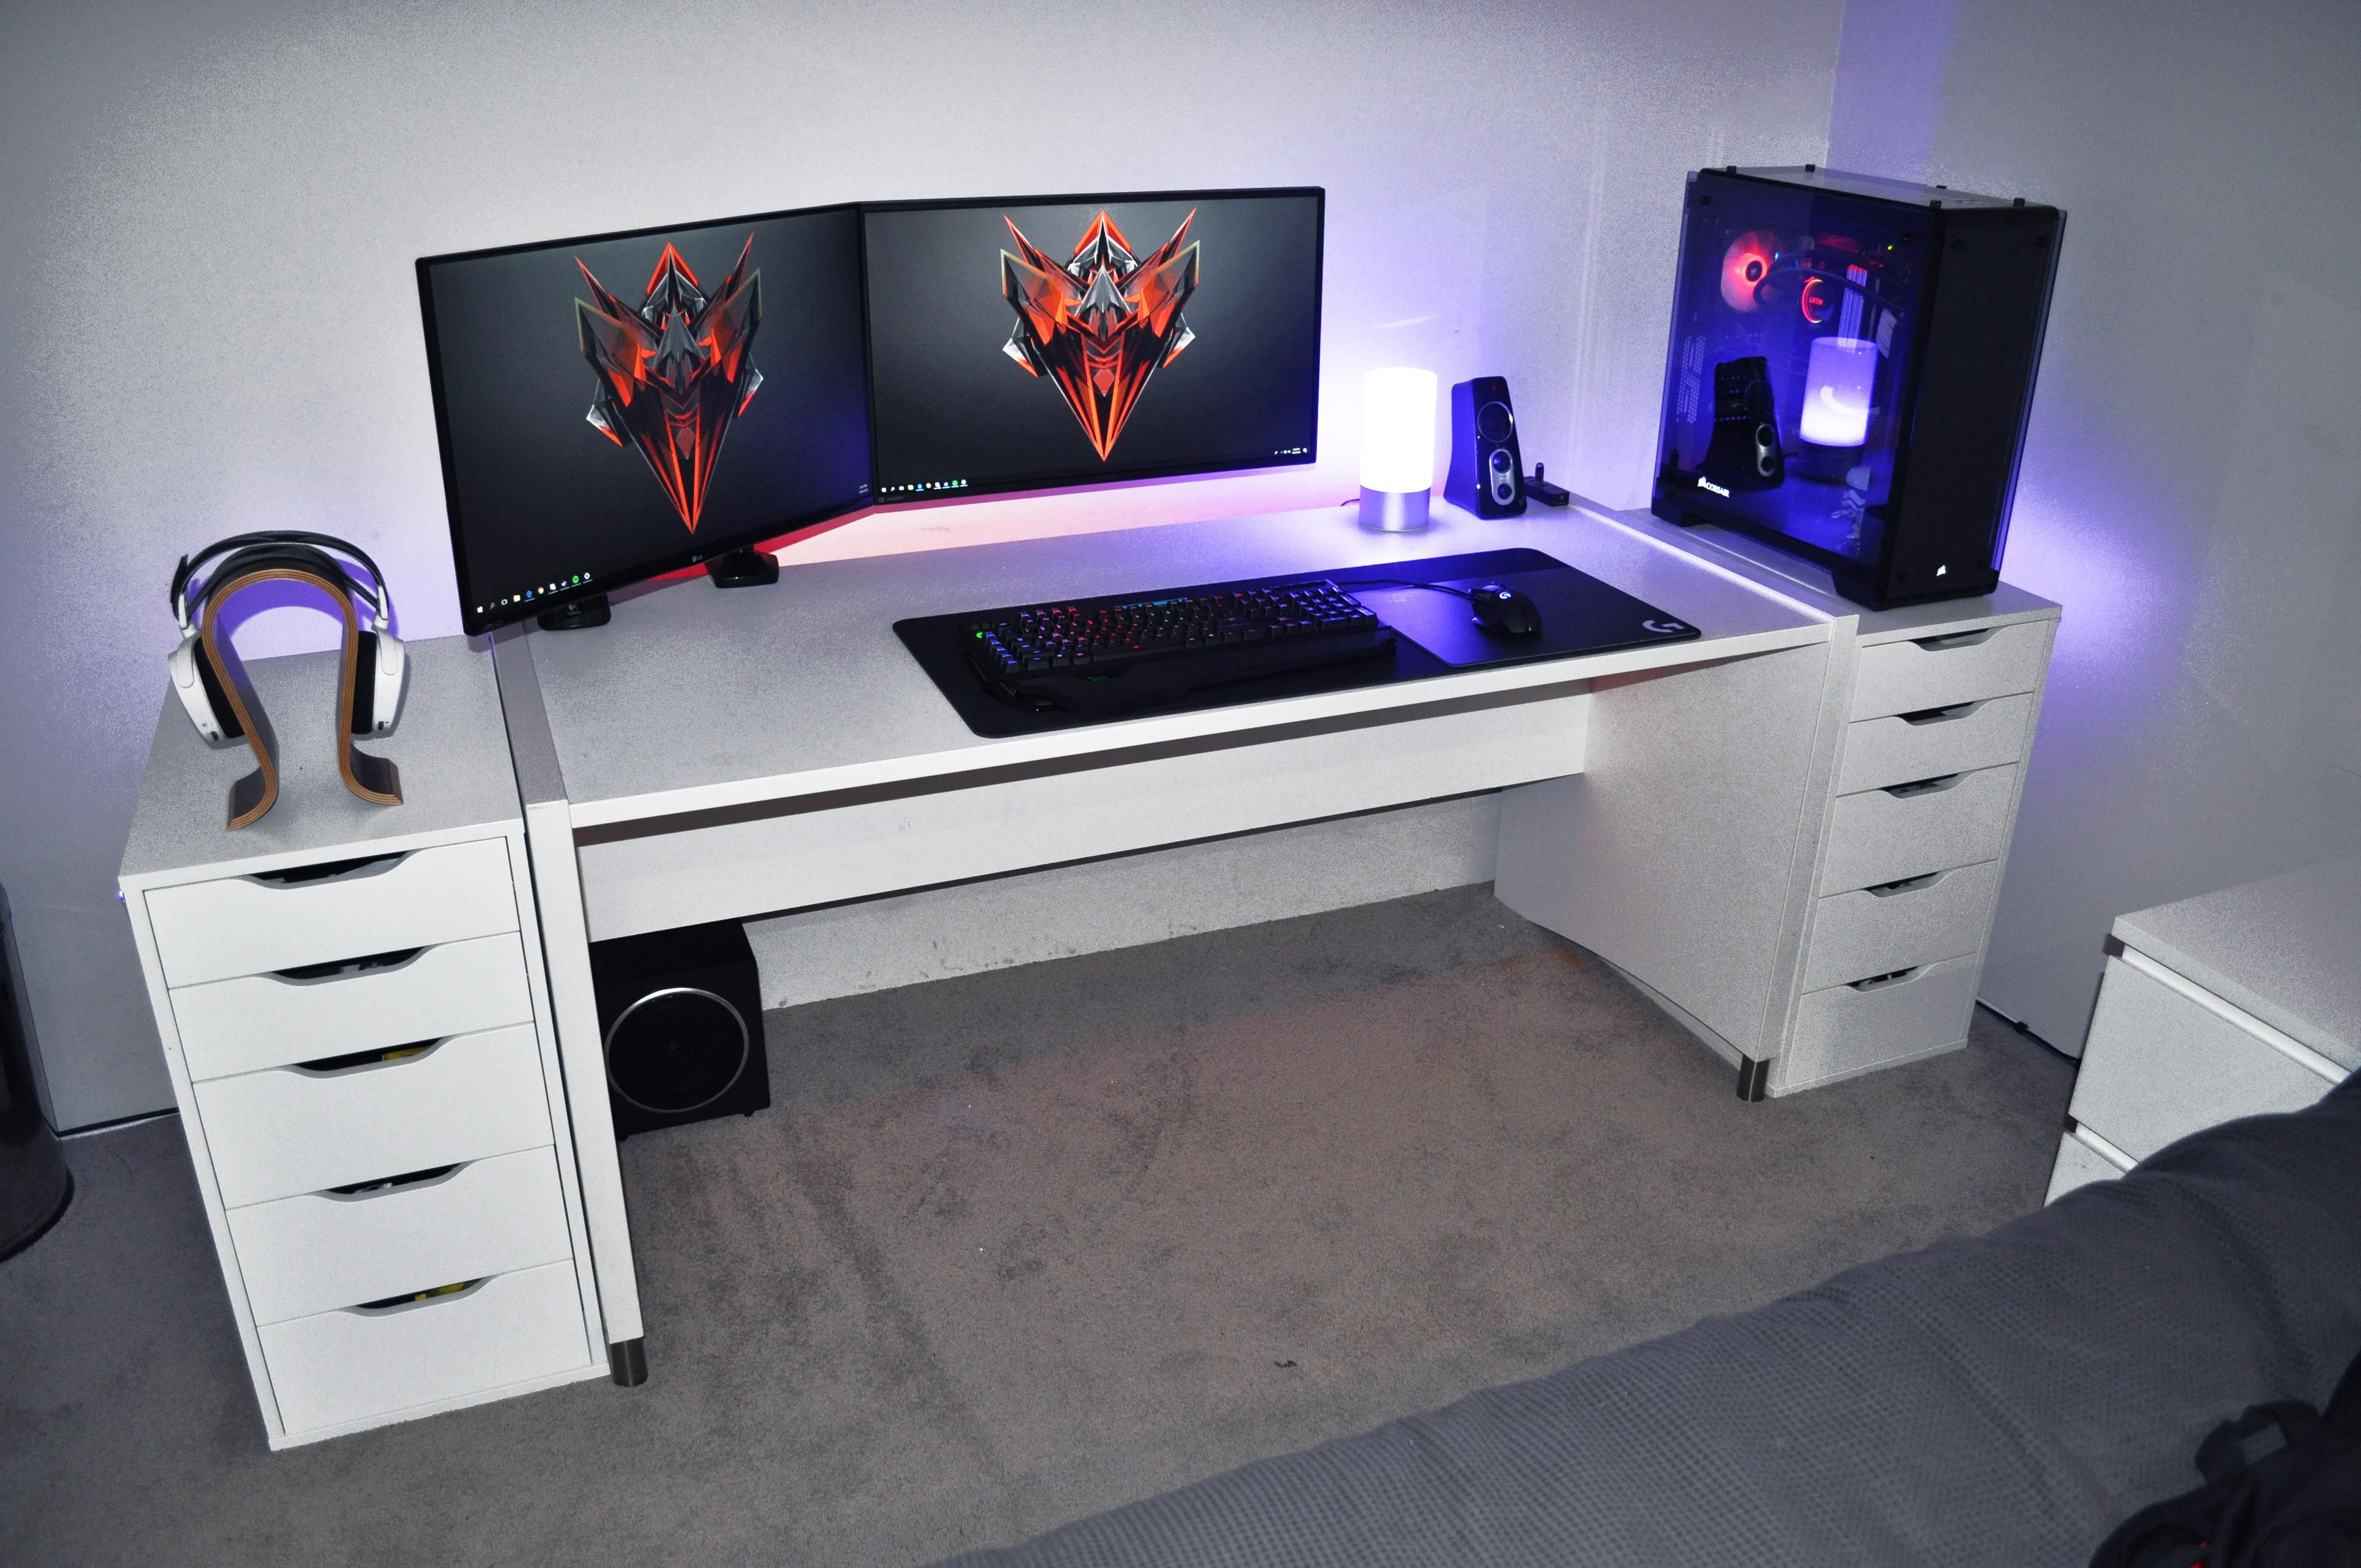 Removed The Desks Two Middle Drawers And Added More Rgb Gaming